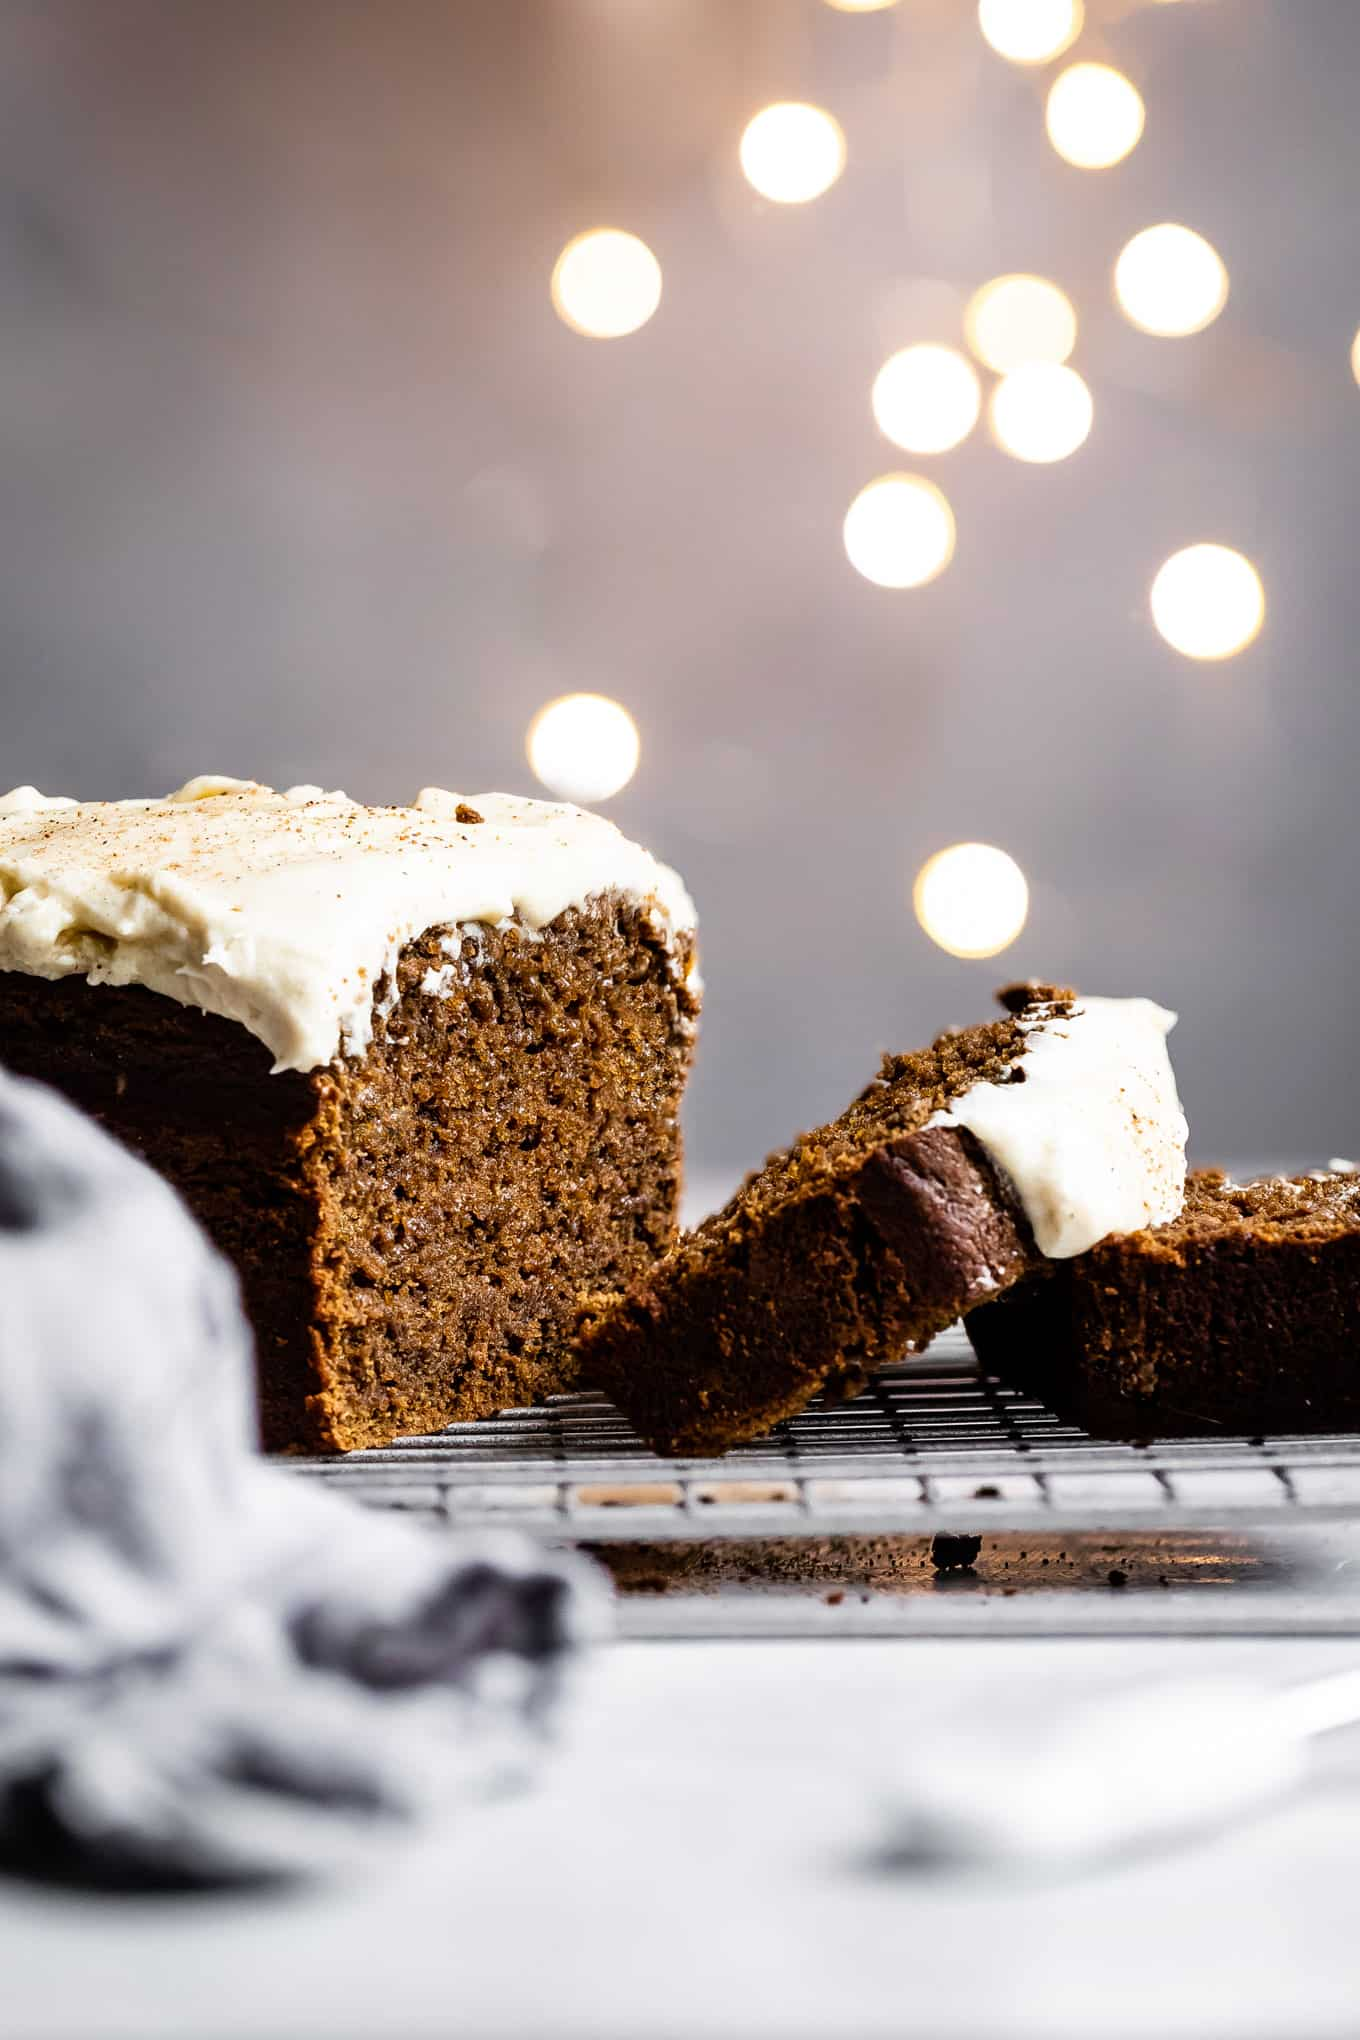 Gluten-Free Gingerbread Loaf with Eggnog Frosting